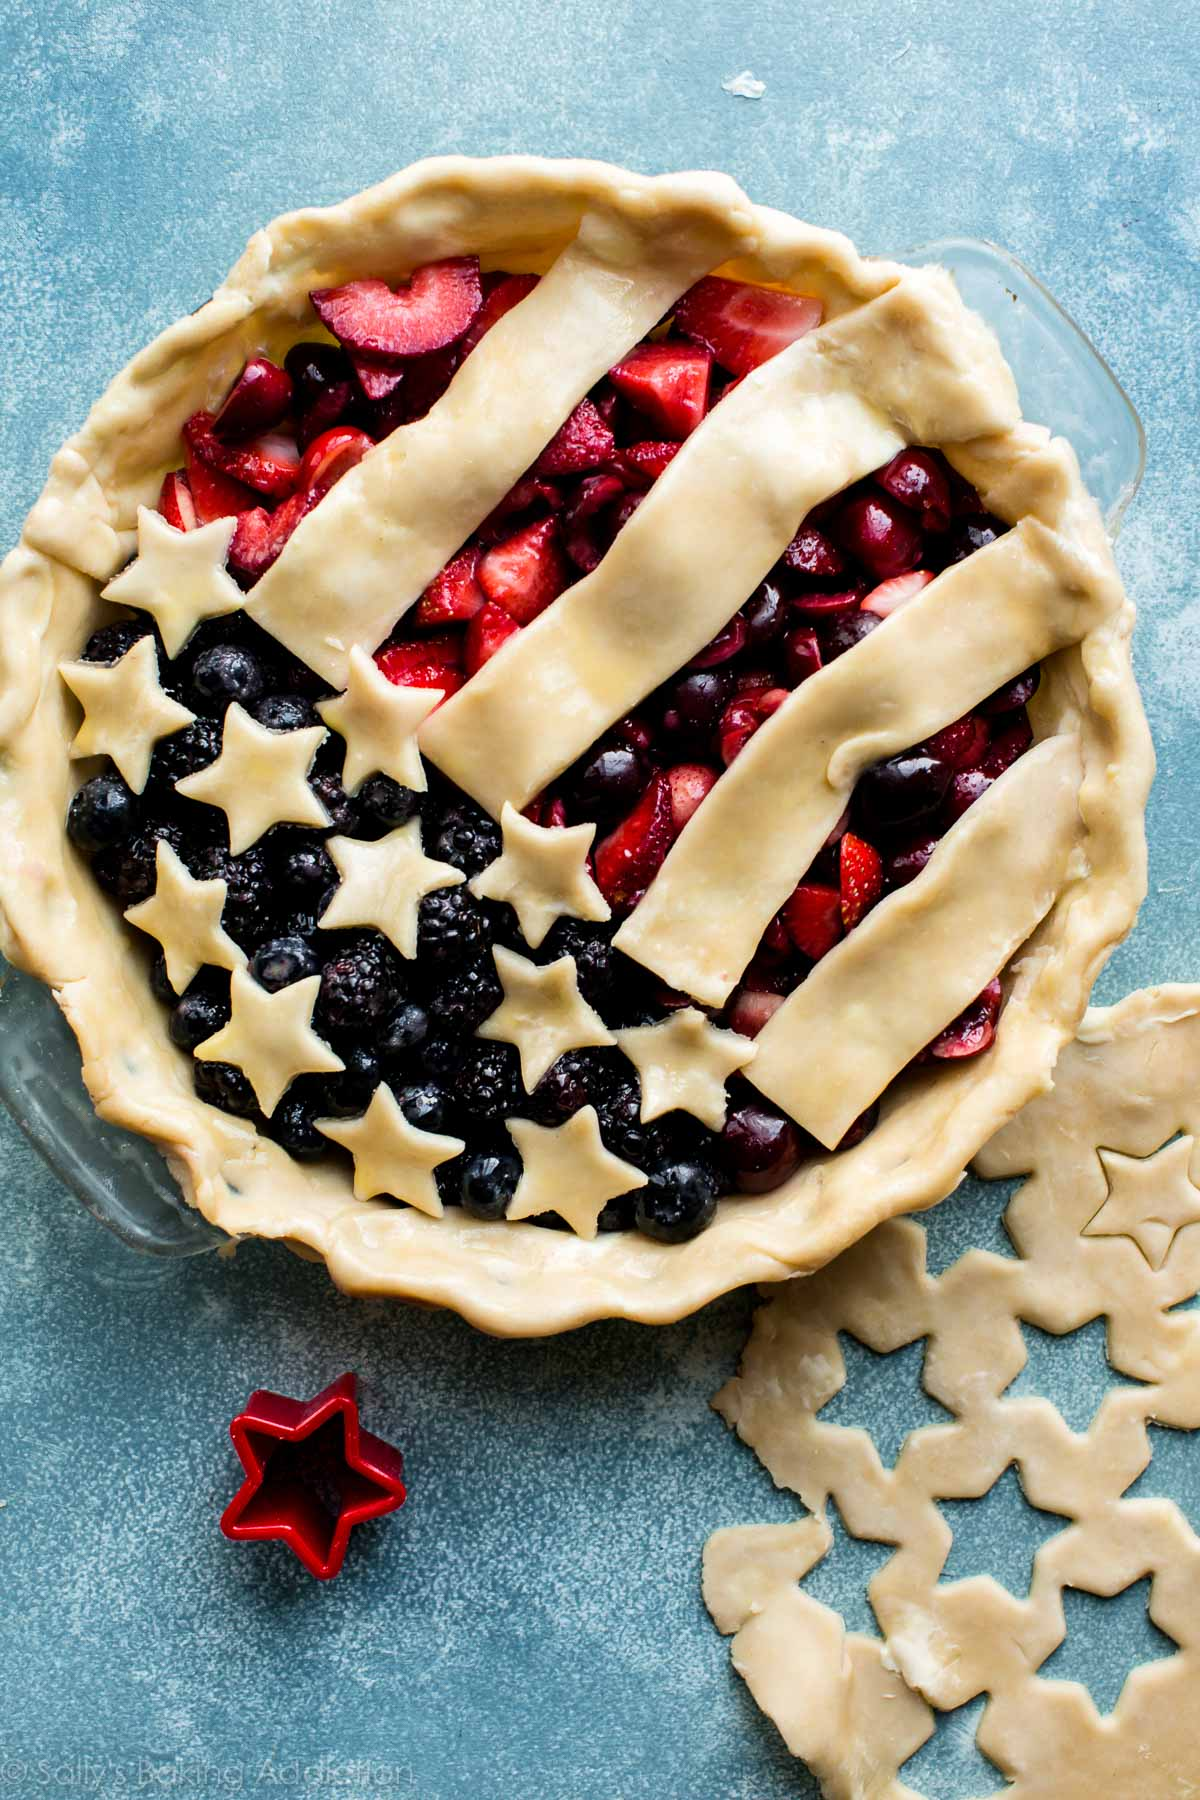 How to make an easy American Flag Pie! Mixed berry fillings and flaky pie crust recipe on sallysbakingaddiction.com